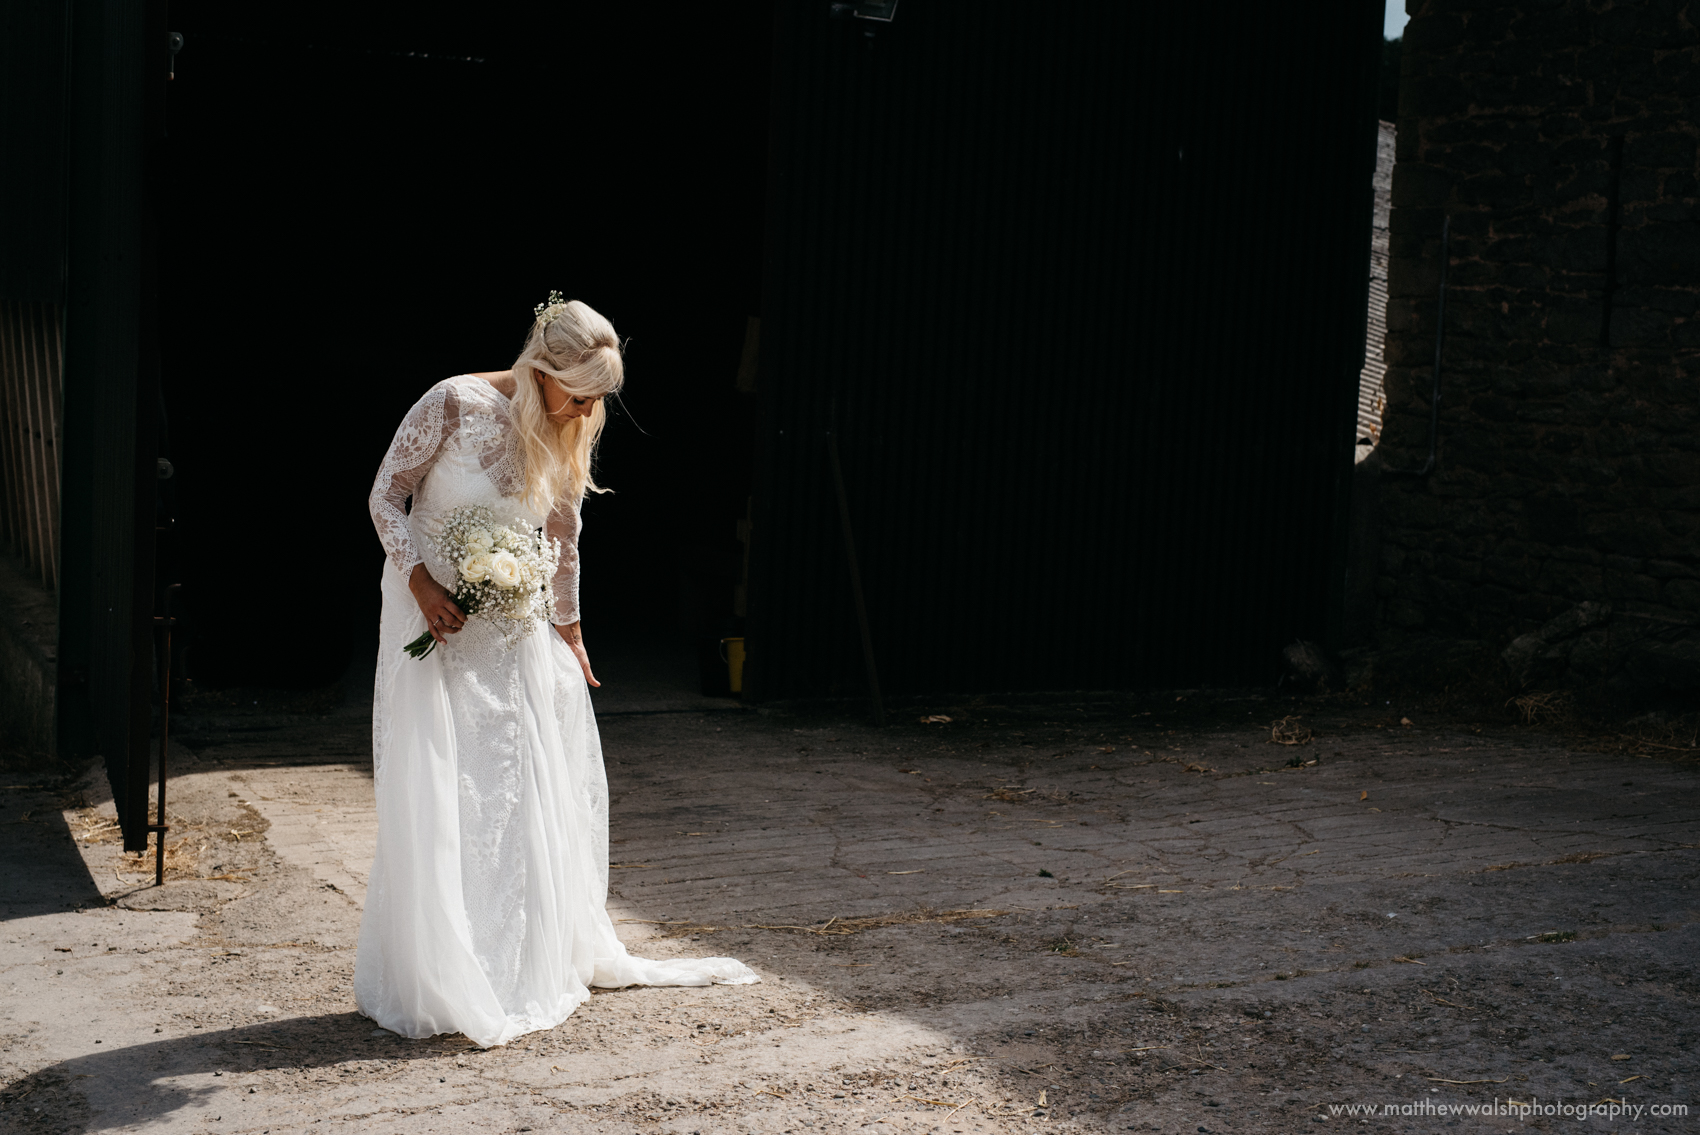 The bride captured in an observed pocket of light